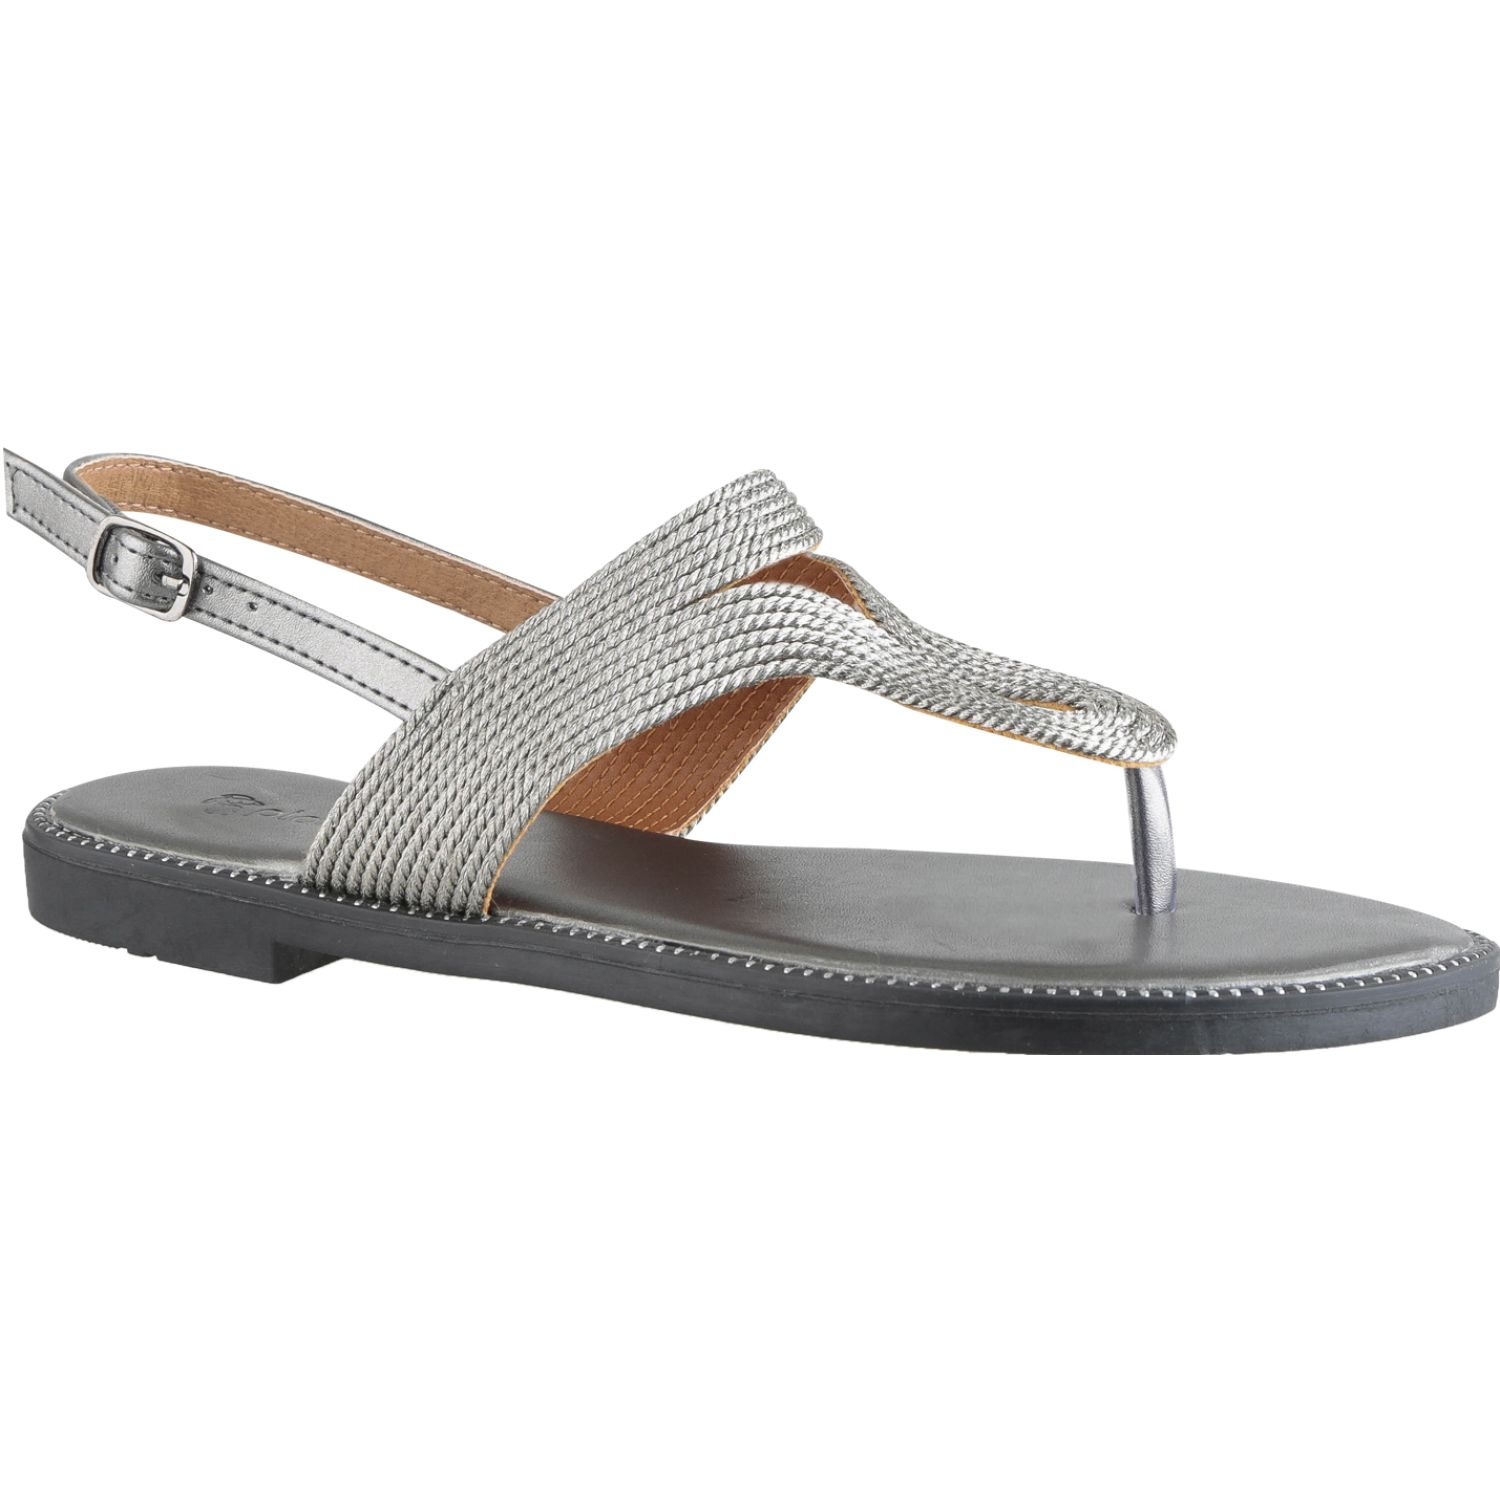 Platanitos sf 47a2 Pewter Flats